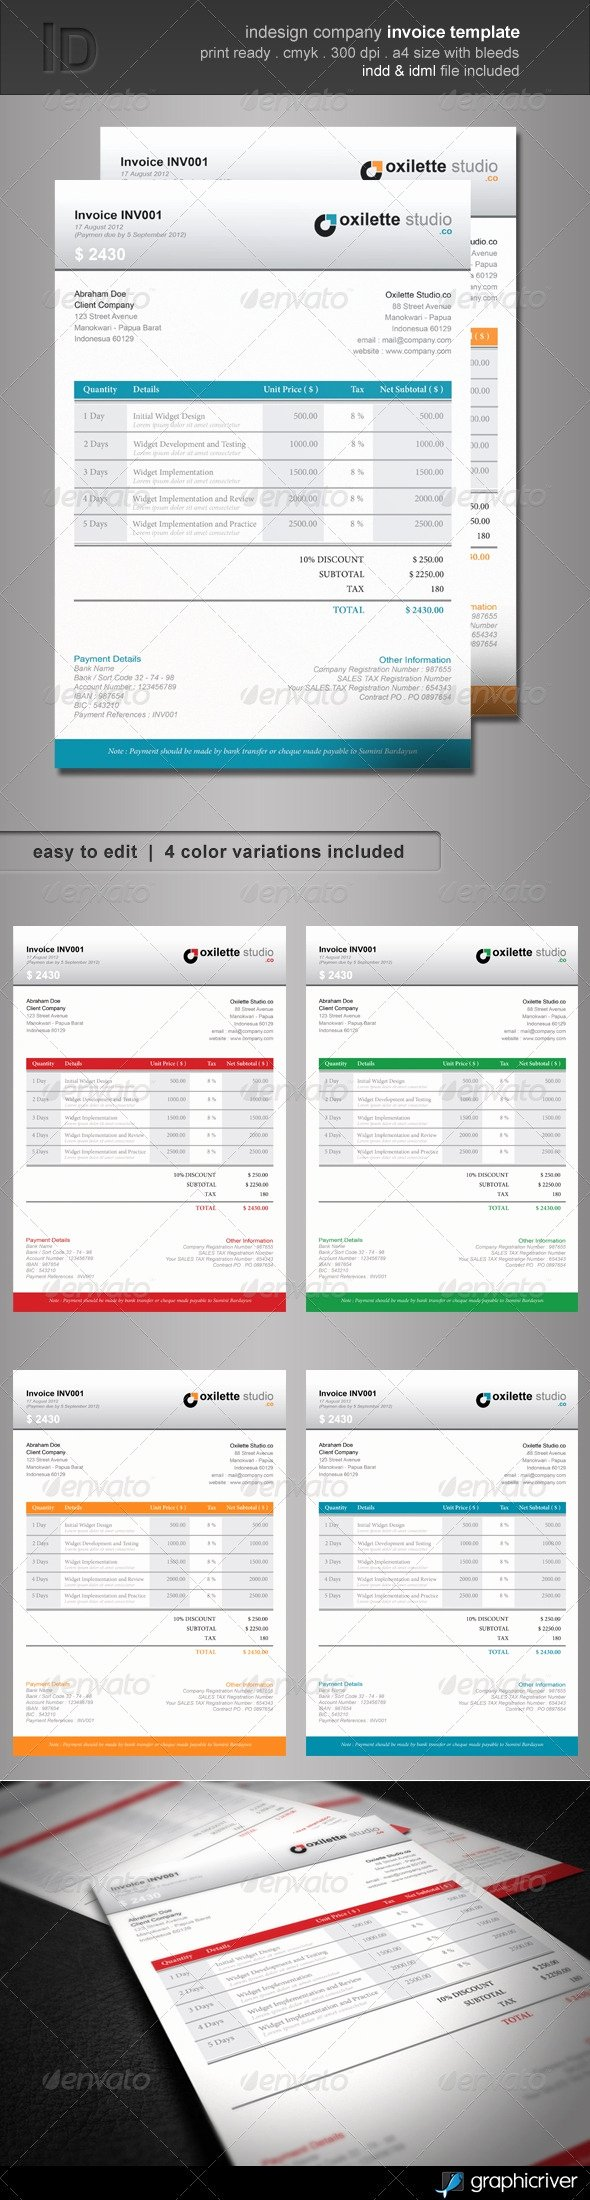 Free Indesign Invoice Template Beautiful Indesign Invoice Template Invoice Template Ideas